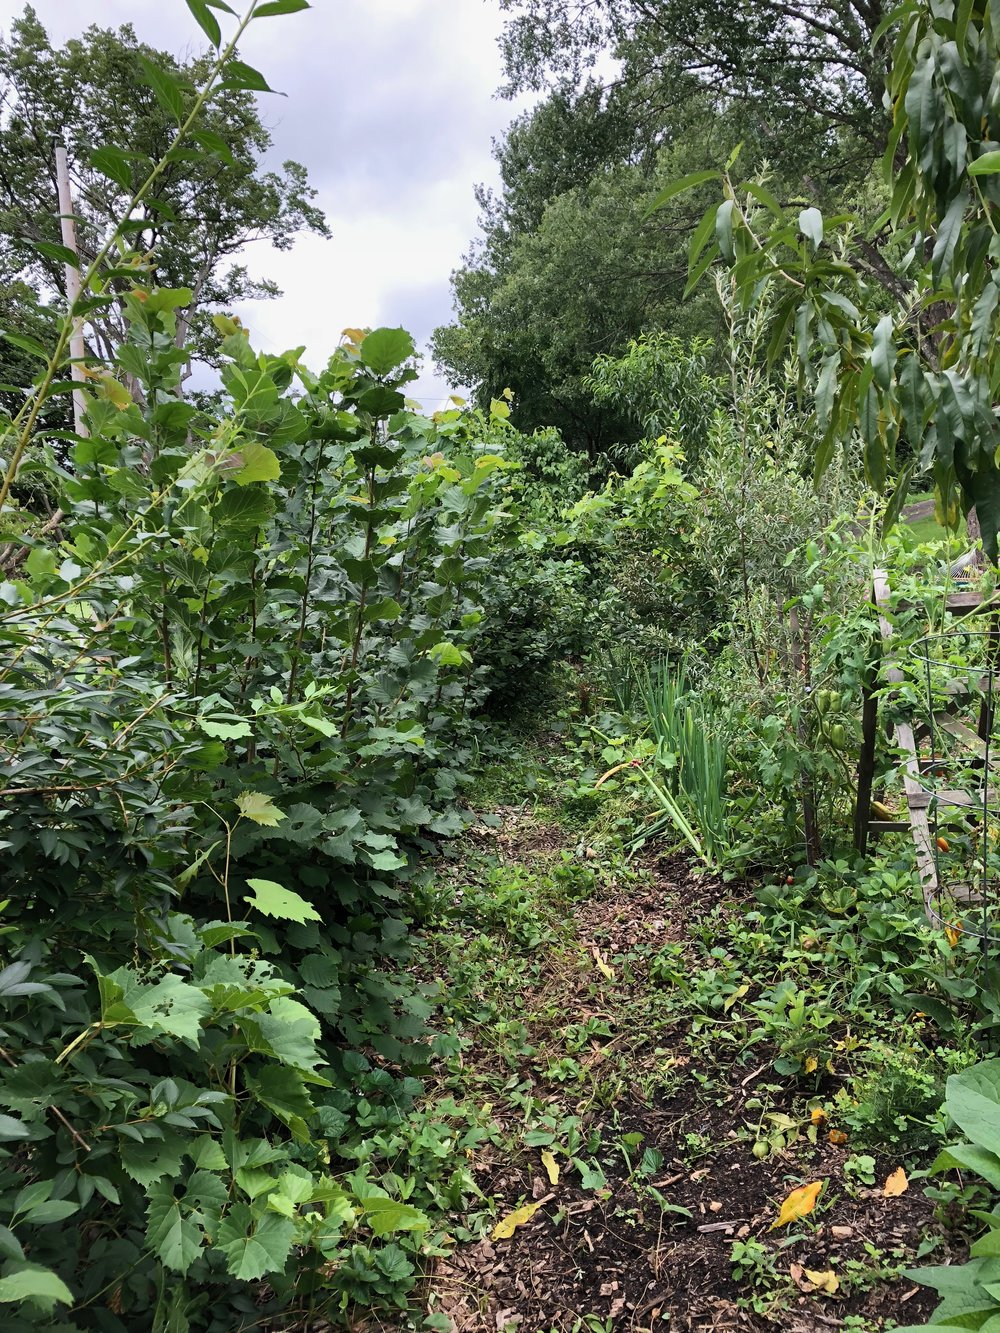 August 2018  The huglekultur beds explosion. We have hazelnuts, blackberries and raspberries on right. But give the massive growth of the blackberries, we are moving them this fall, we are adding mid slop terraces to our existing terraces and these will go with two other that are on the slope behind the root cellar. Under the fruit trees and shrubs on the left, we have a few annuals that are now crowded out. There is a mix of herbaceous perennials (echinacea, comfrey, lavender, yarrow, walking onions, etc.) and a ground cover of both woodland strawberries and some ever bearing strawberries.